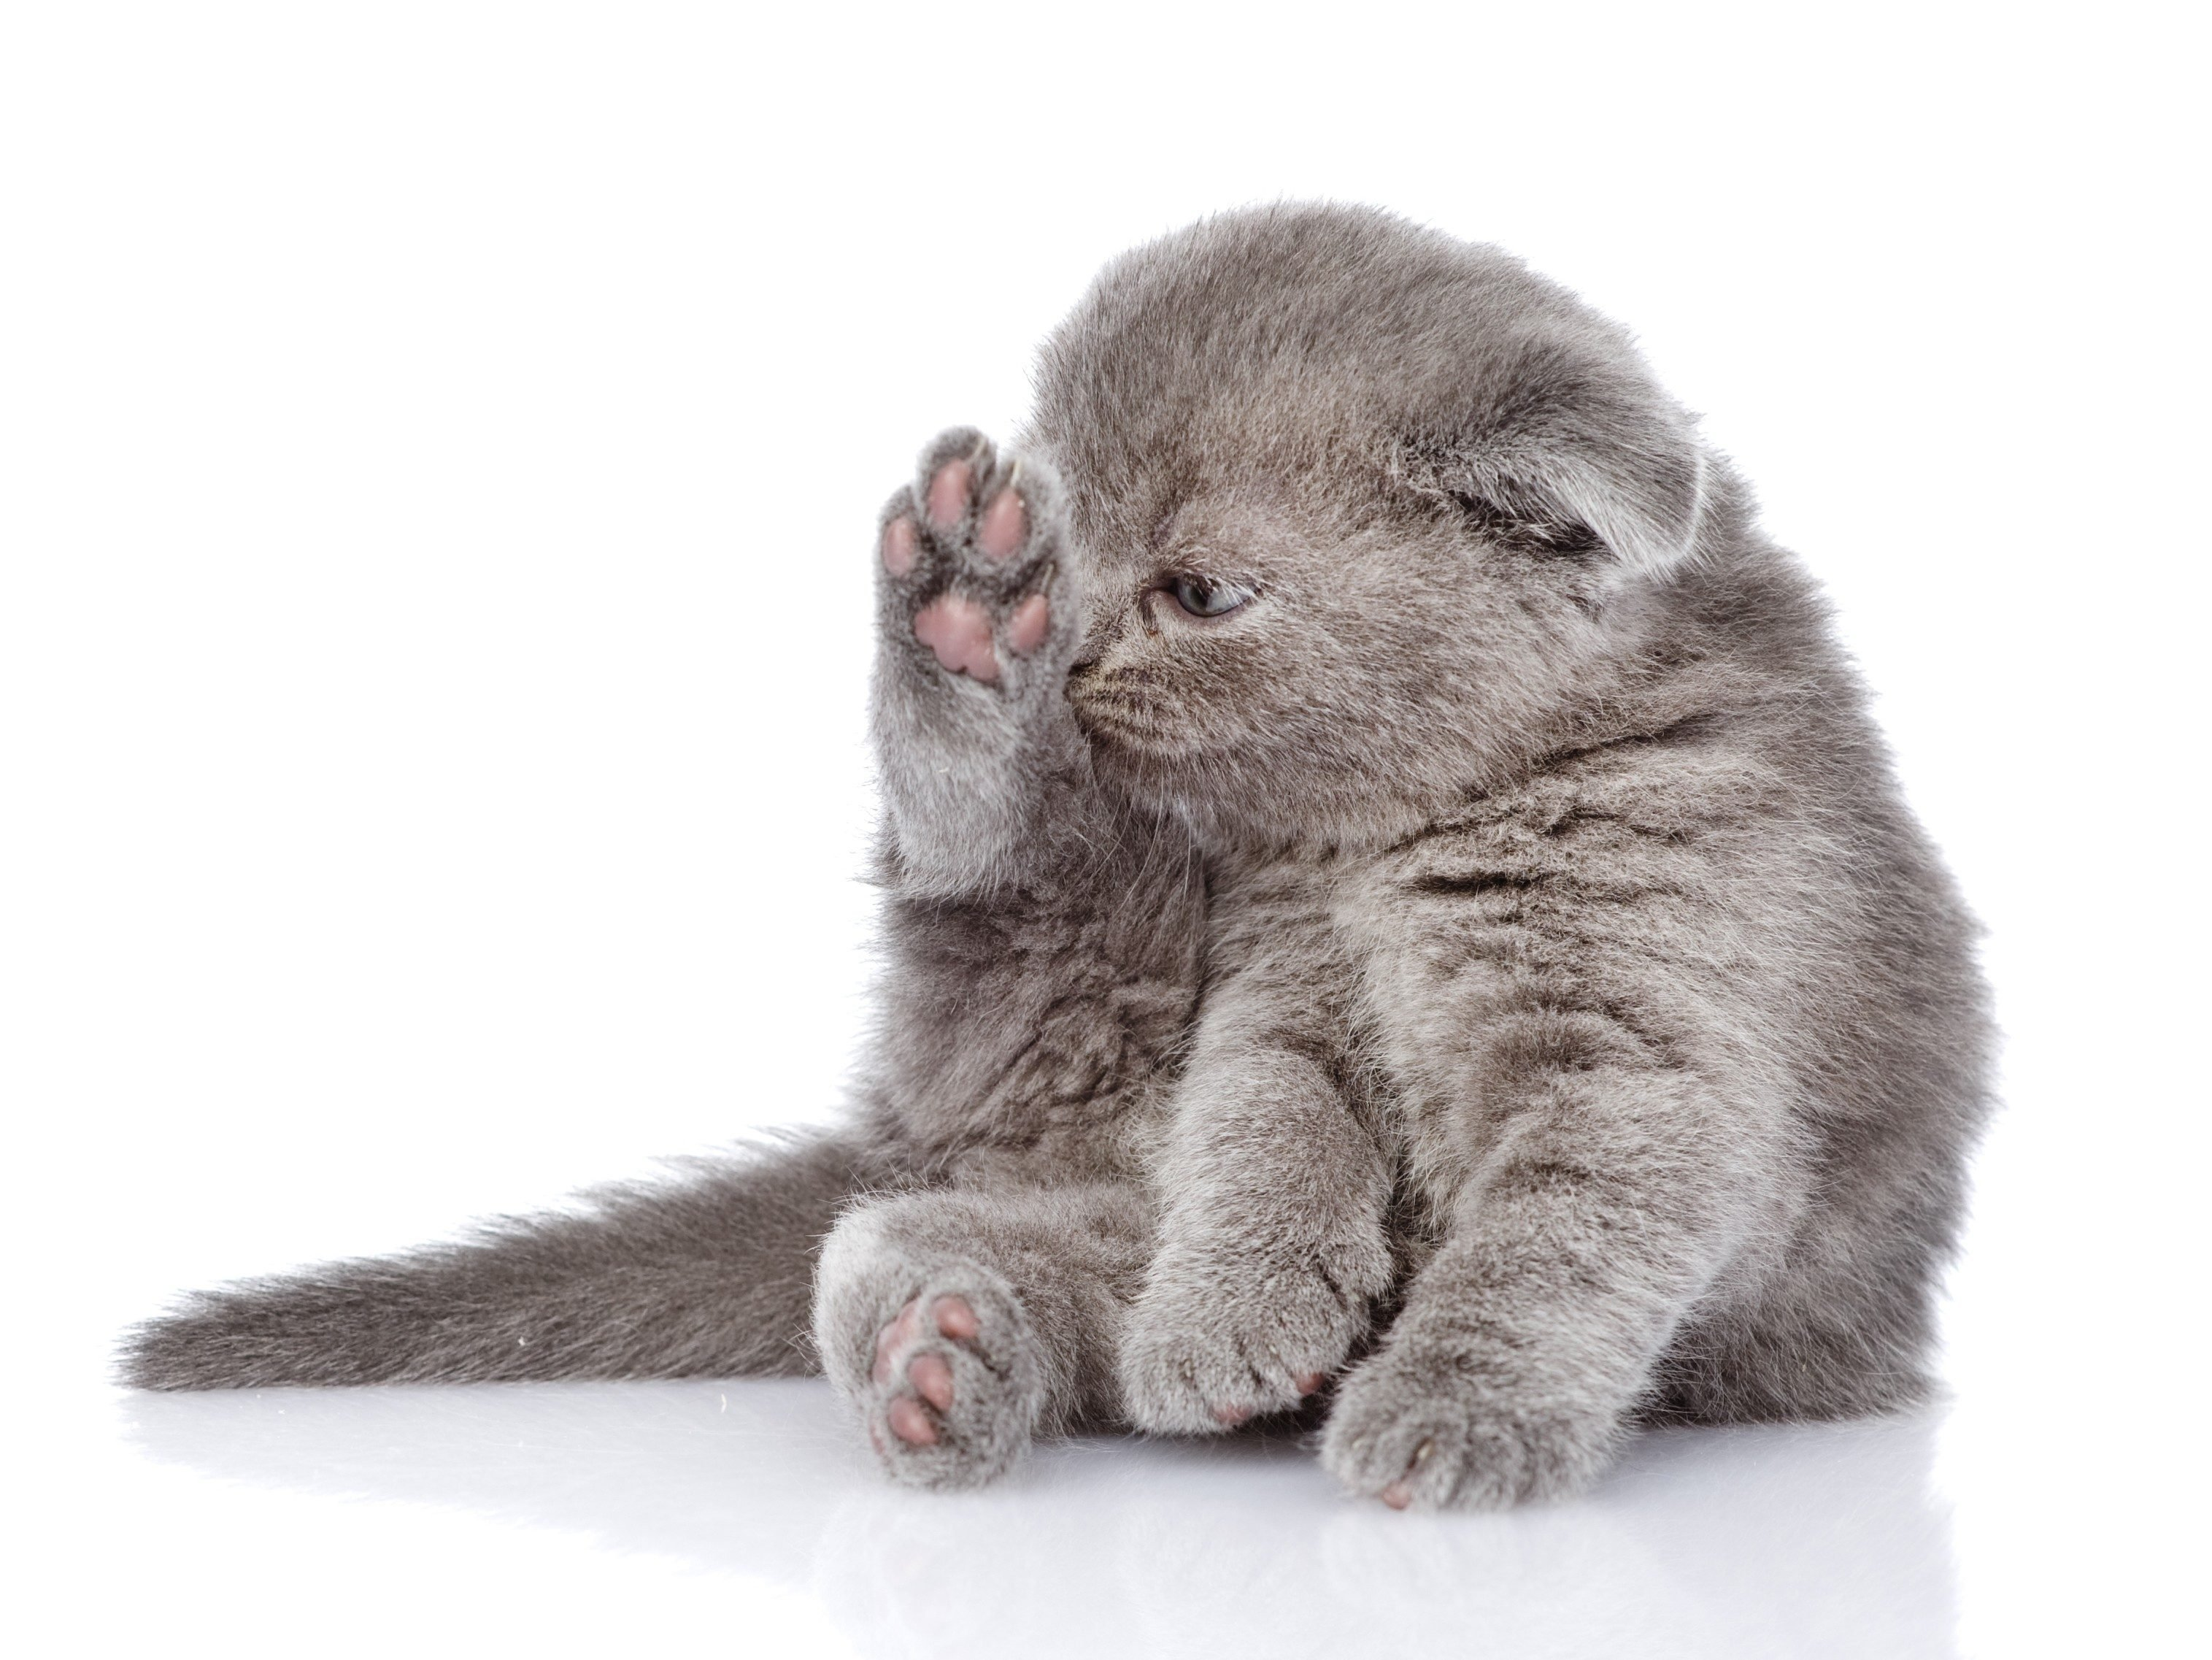 Cats Clean Themselves for Relaxation